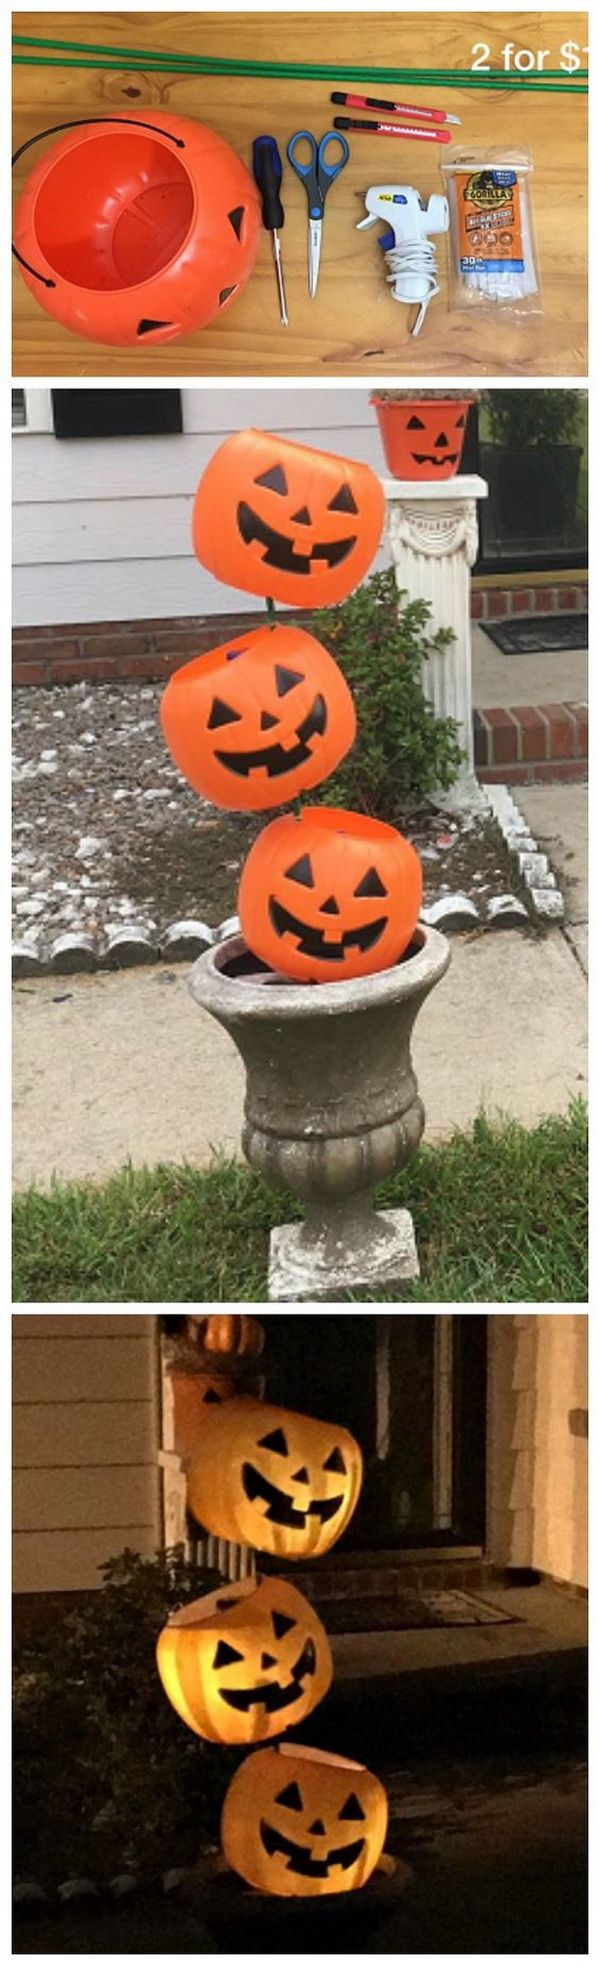 30+ Homemade Halloween Decoration Ideas Pinterest Plastic - Homemade Halloween Decorations Pinterest